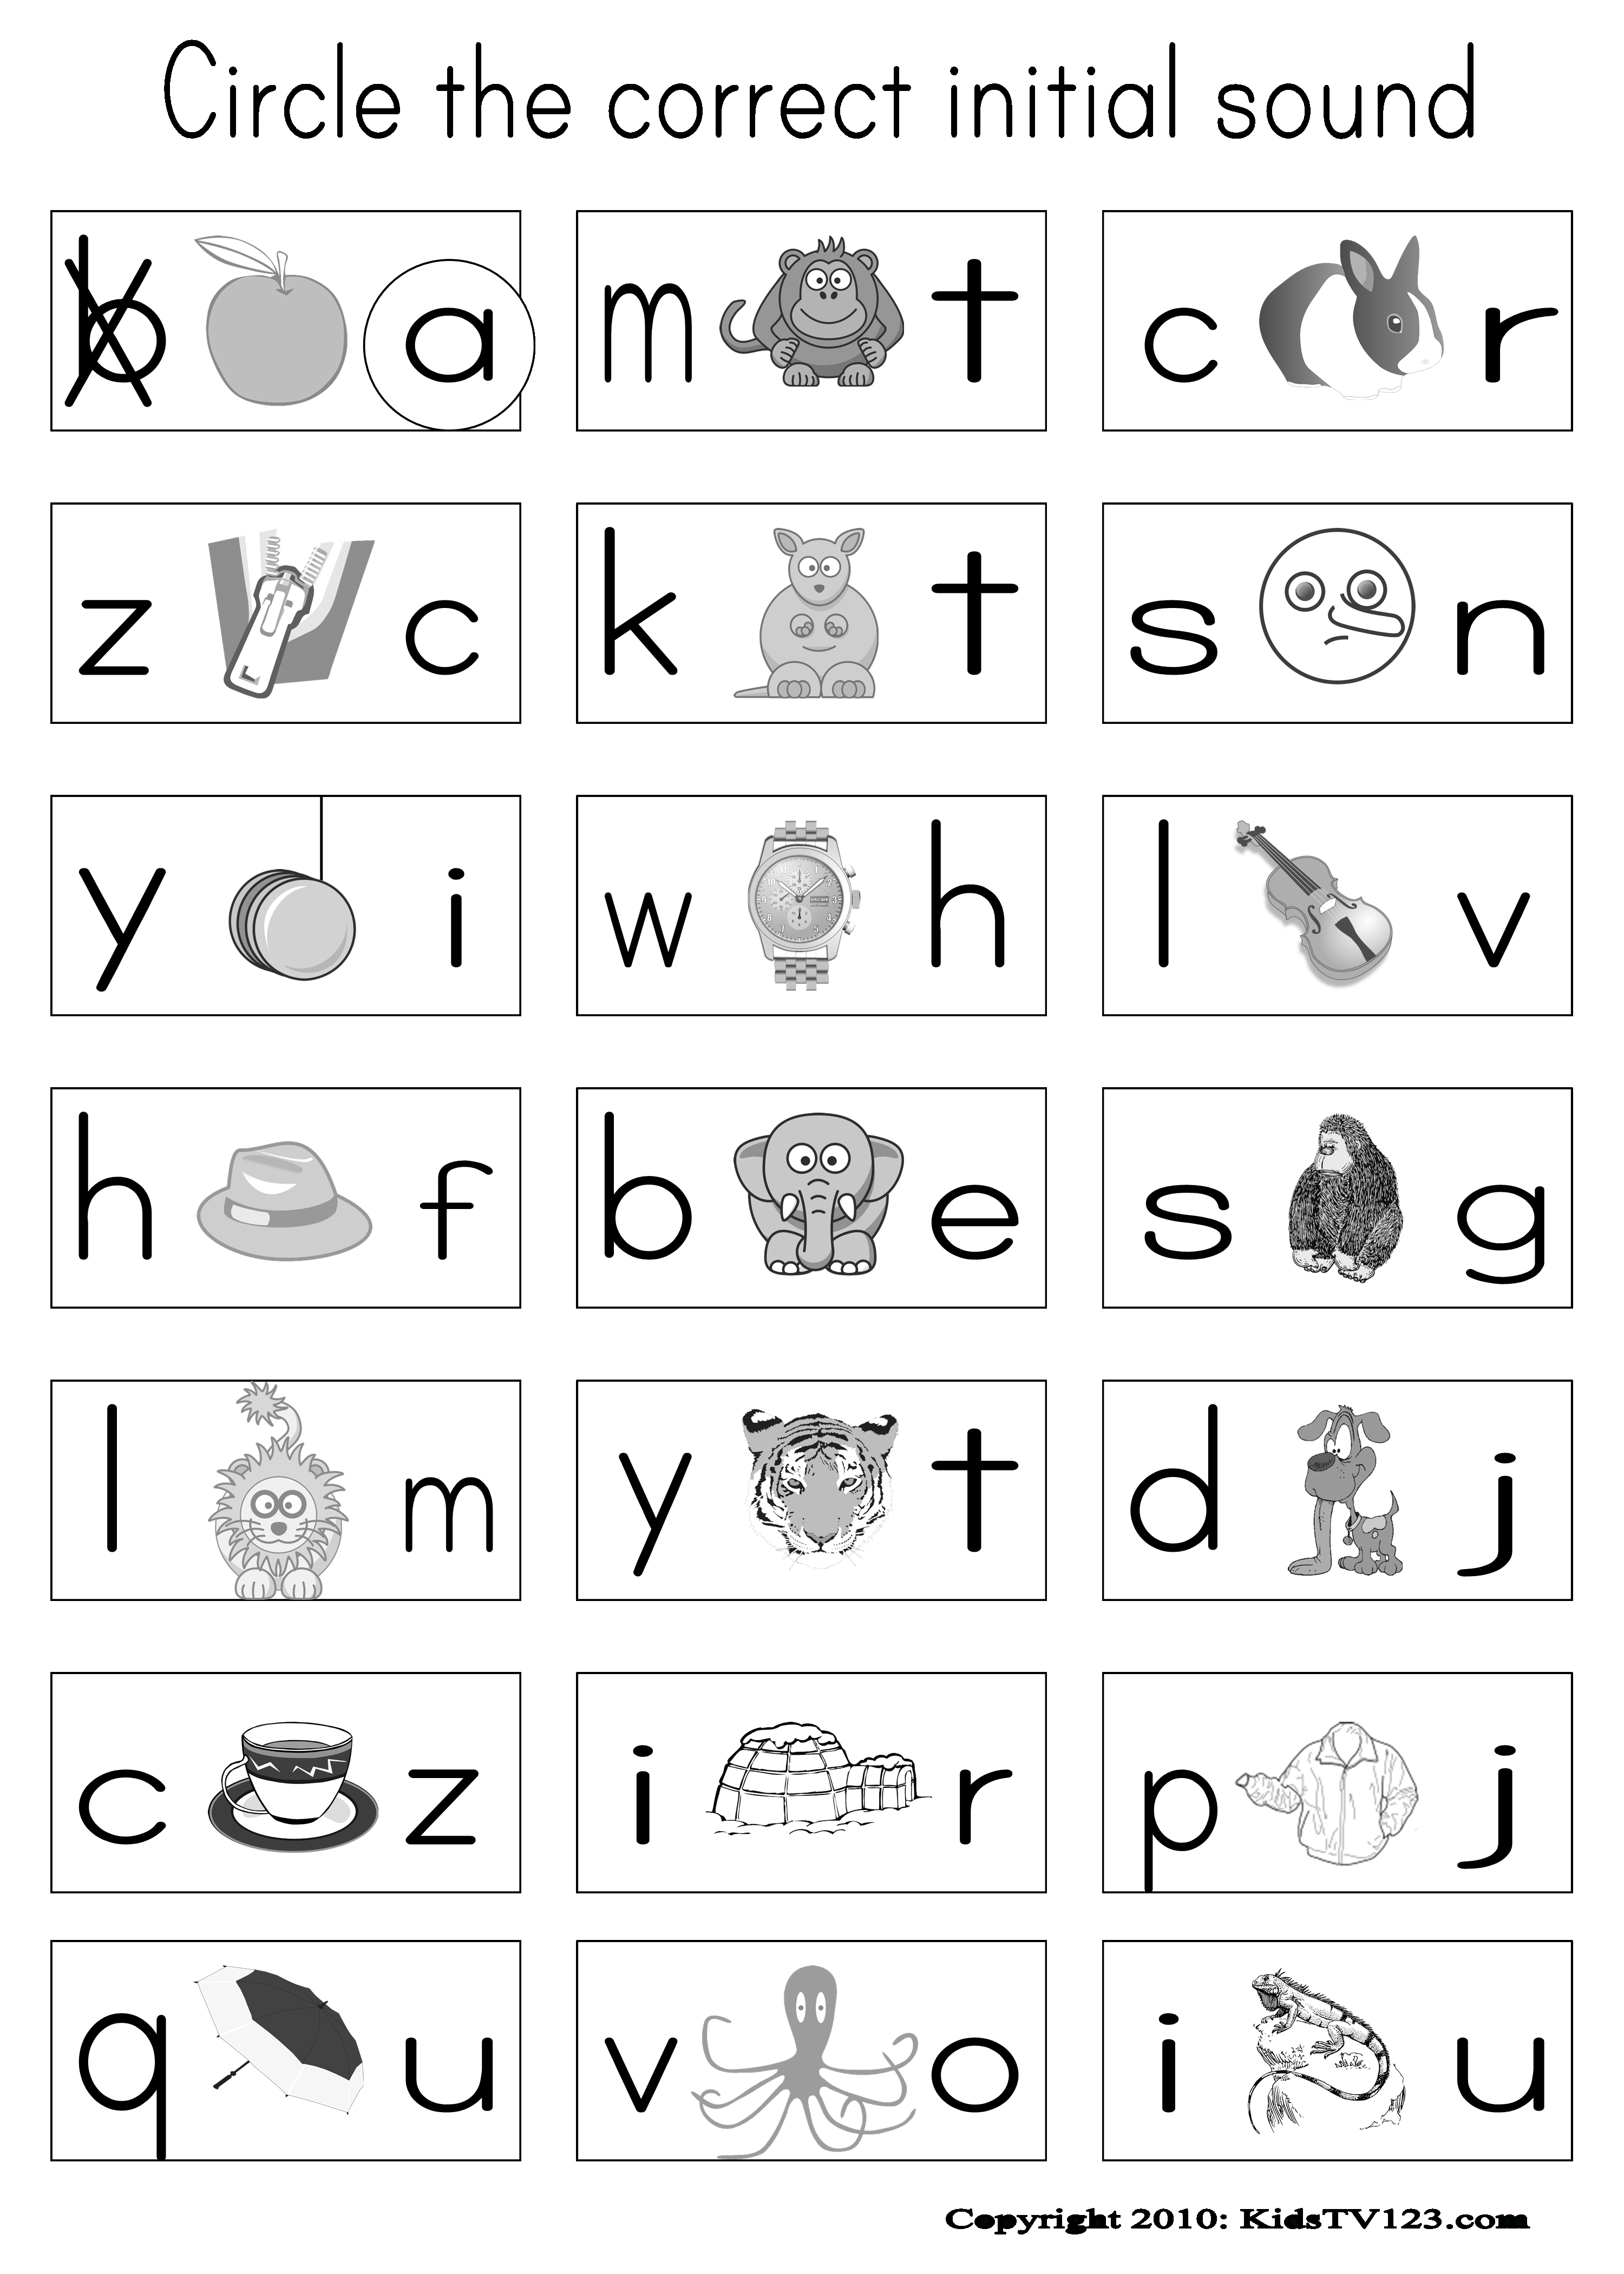 Kidstv123 - Phonics Worksheets | Classroom-Reading & Phonics - Free Printable Phonics Worksheets